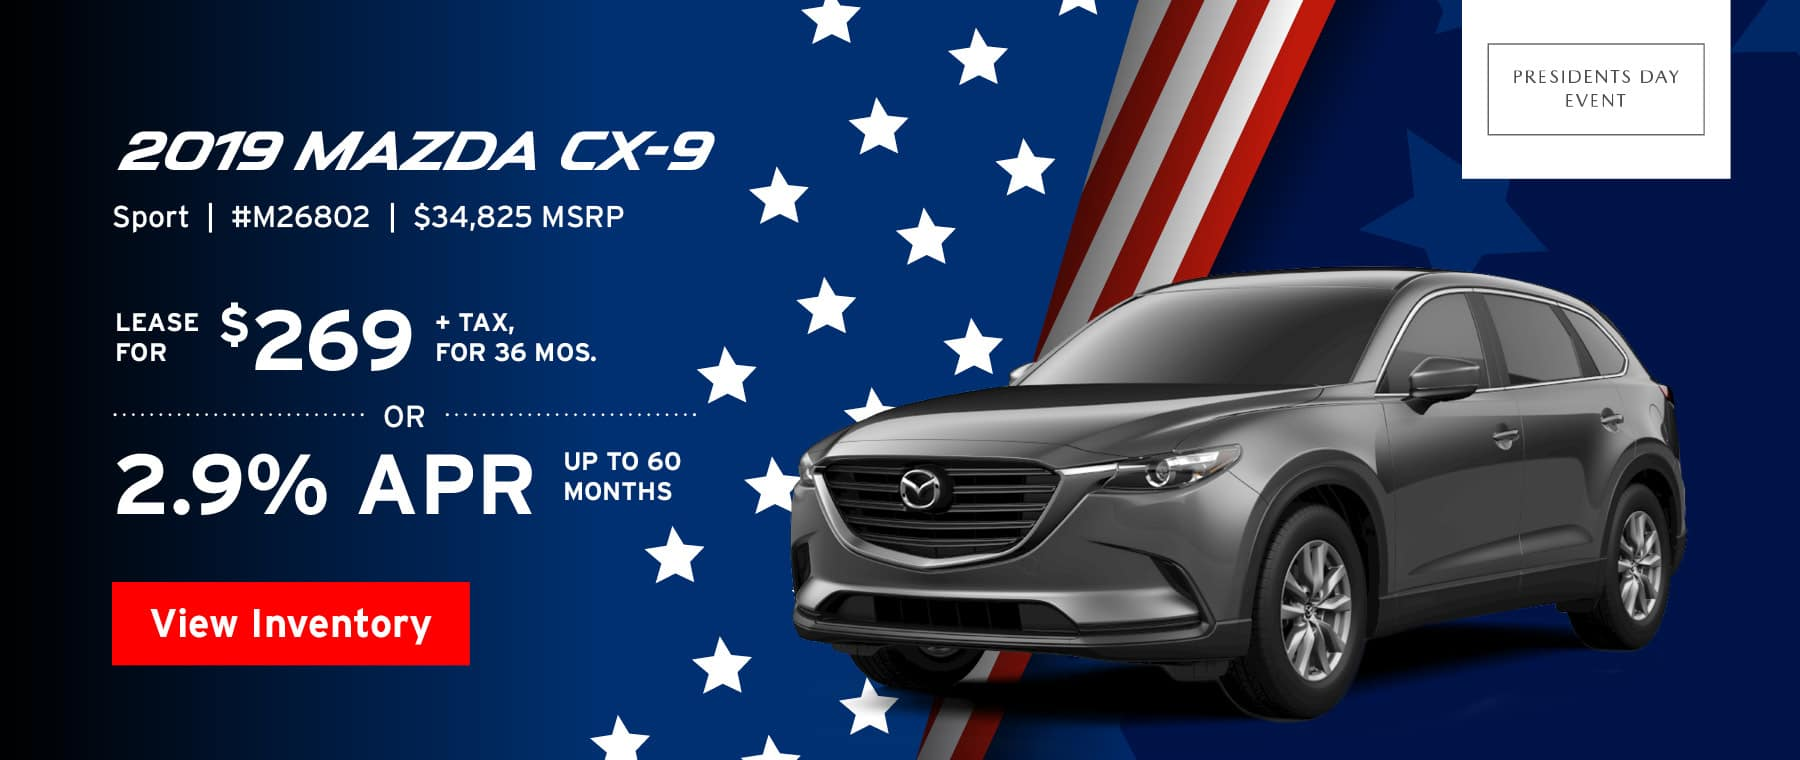 Lease the 2019 Mazda CX-9 Sport for $269, plus tax for 36 months, or 2.9% APR up to 60 months.